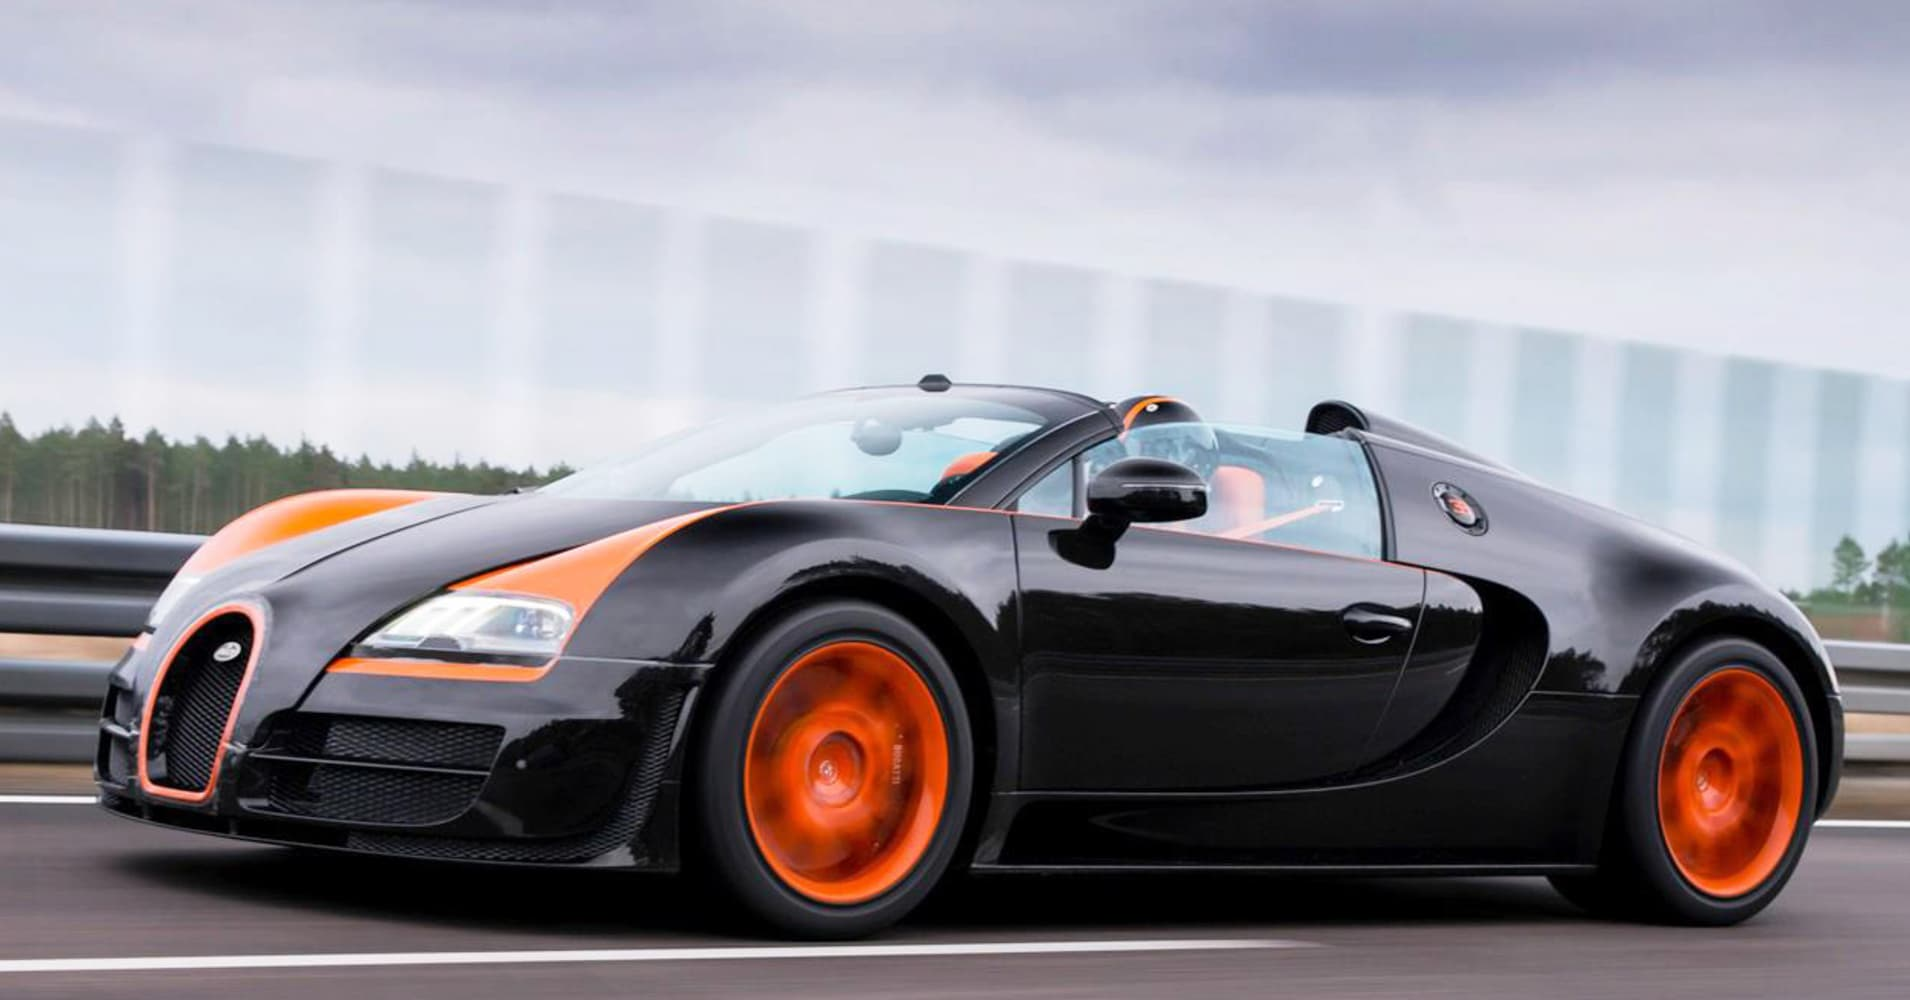 Cheap Auto Rental >> The most expensive car to rent in America is $20,000 a day